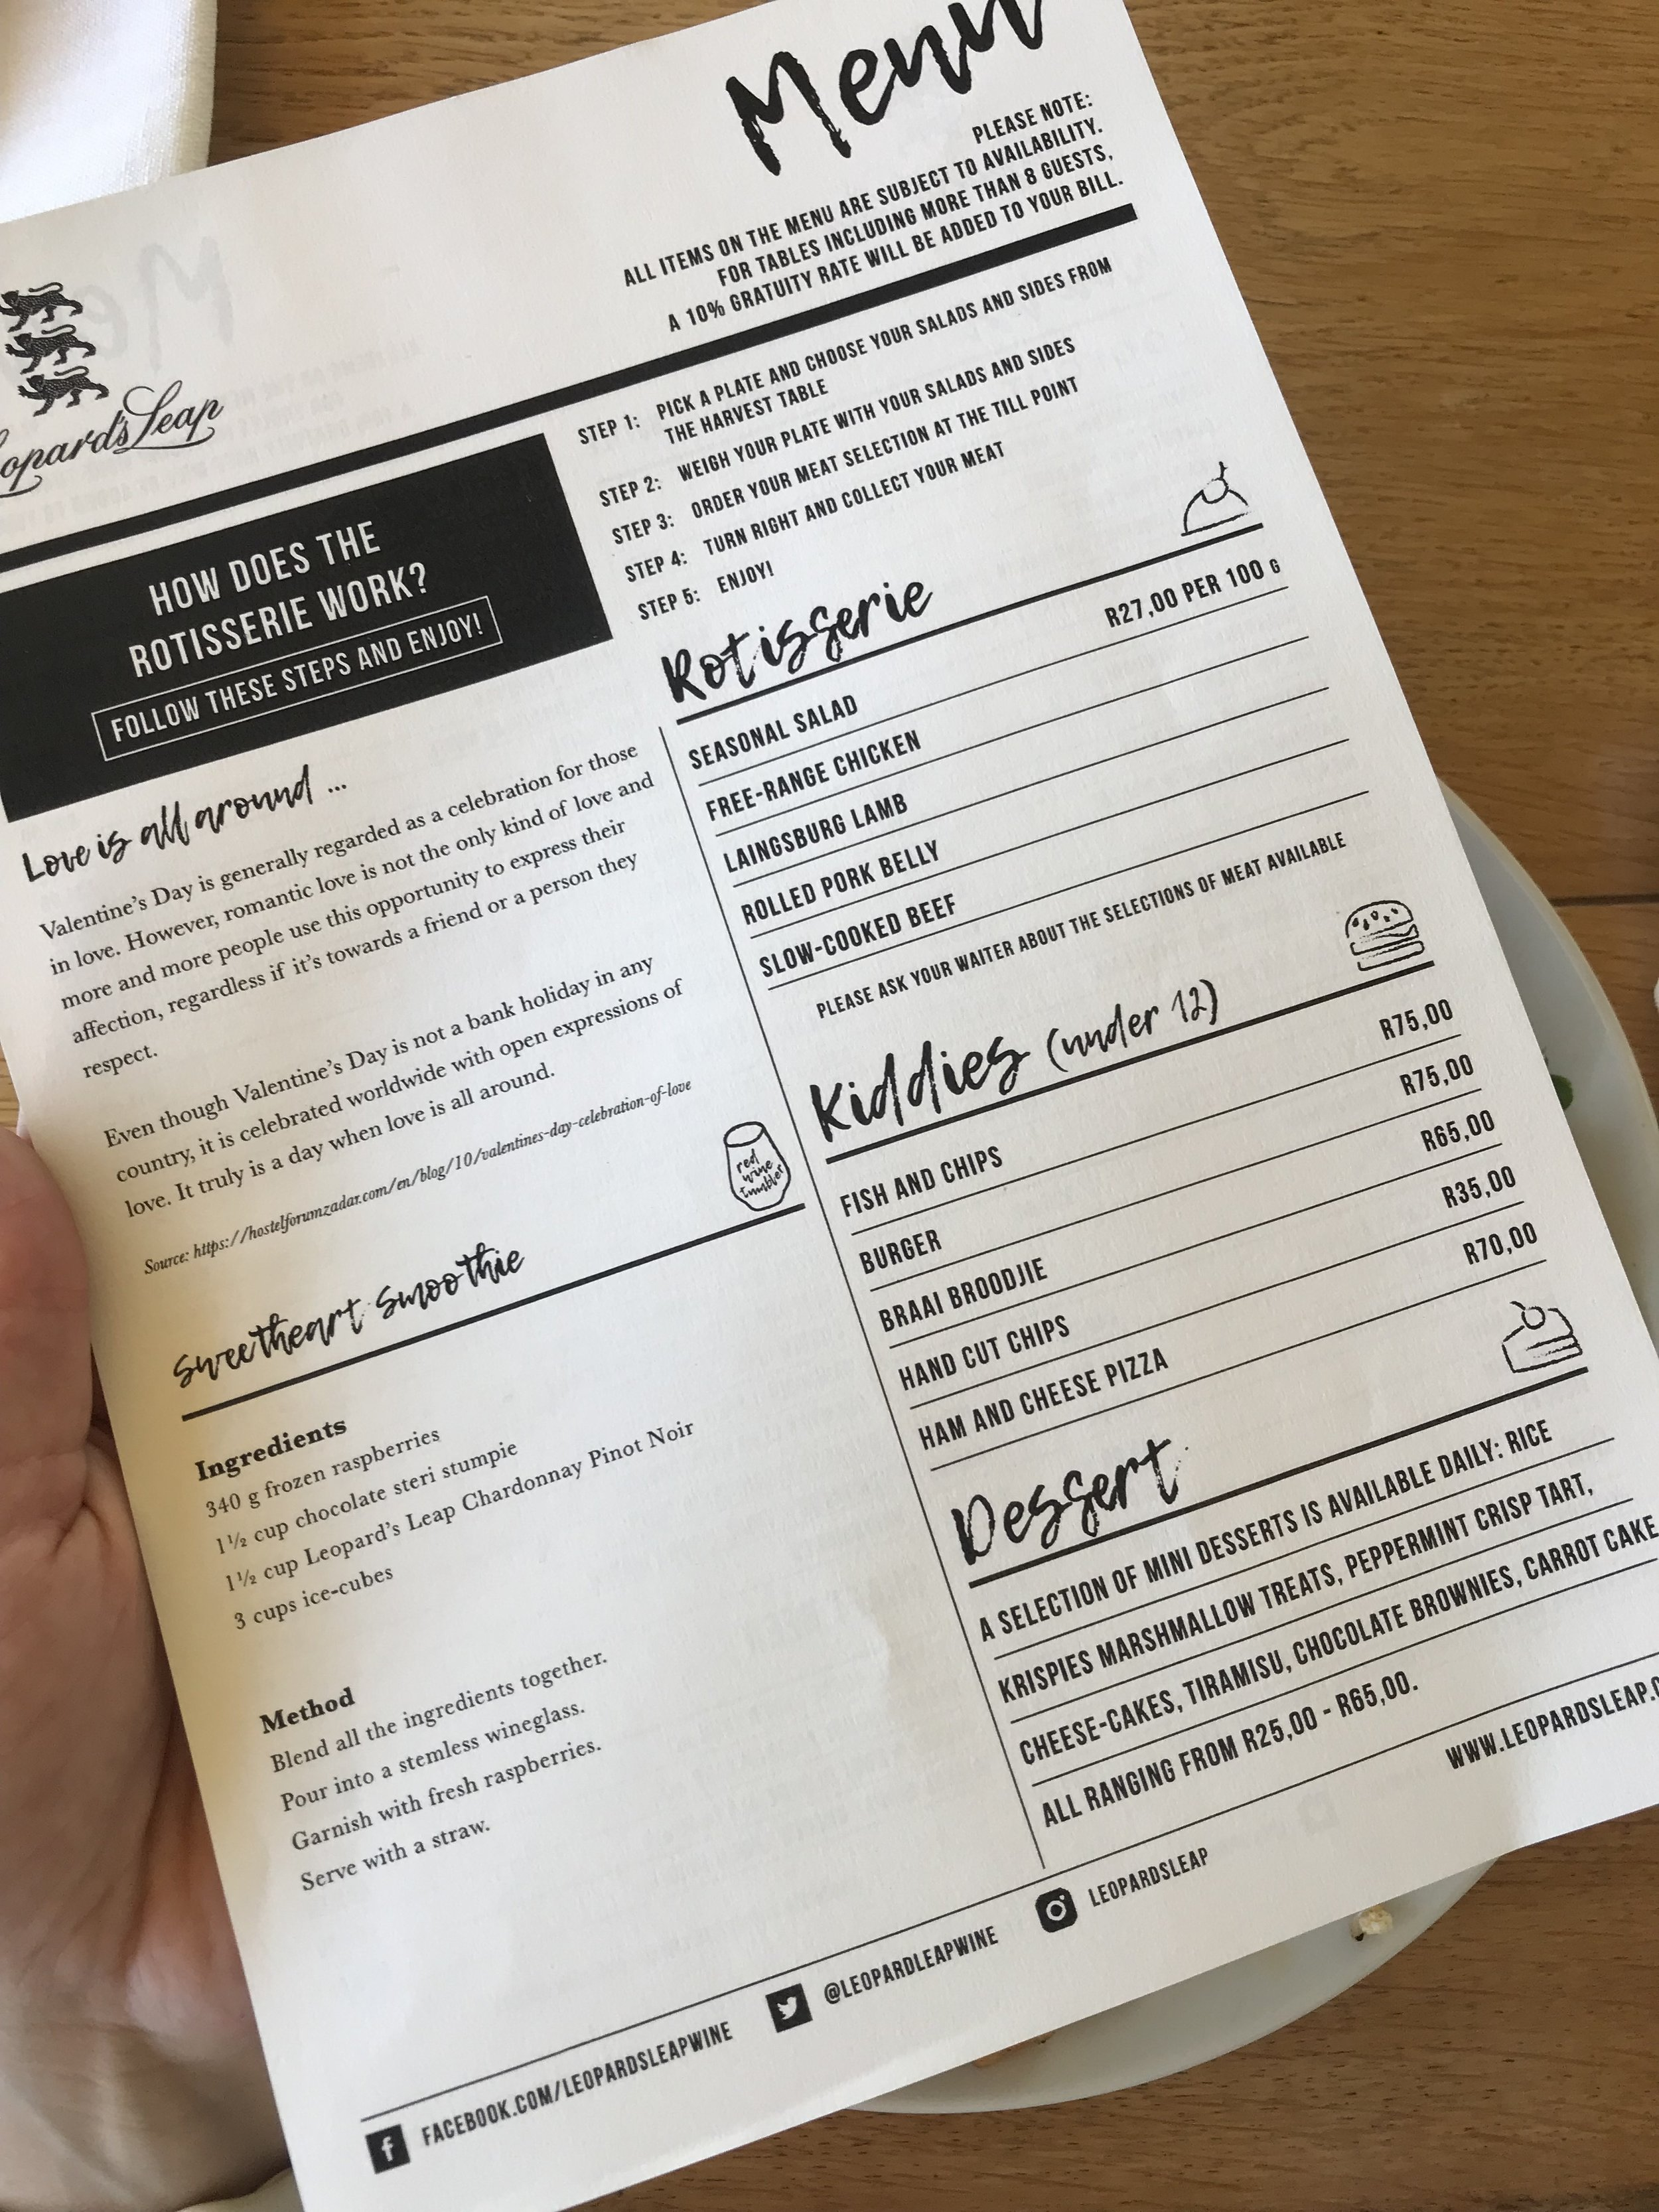 Menu explains how the lunch works